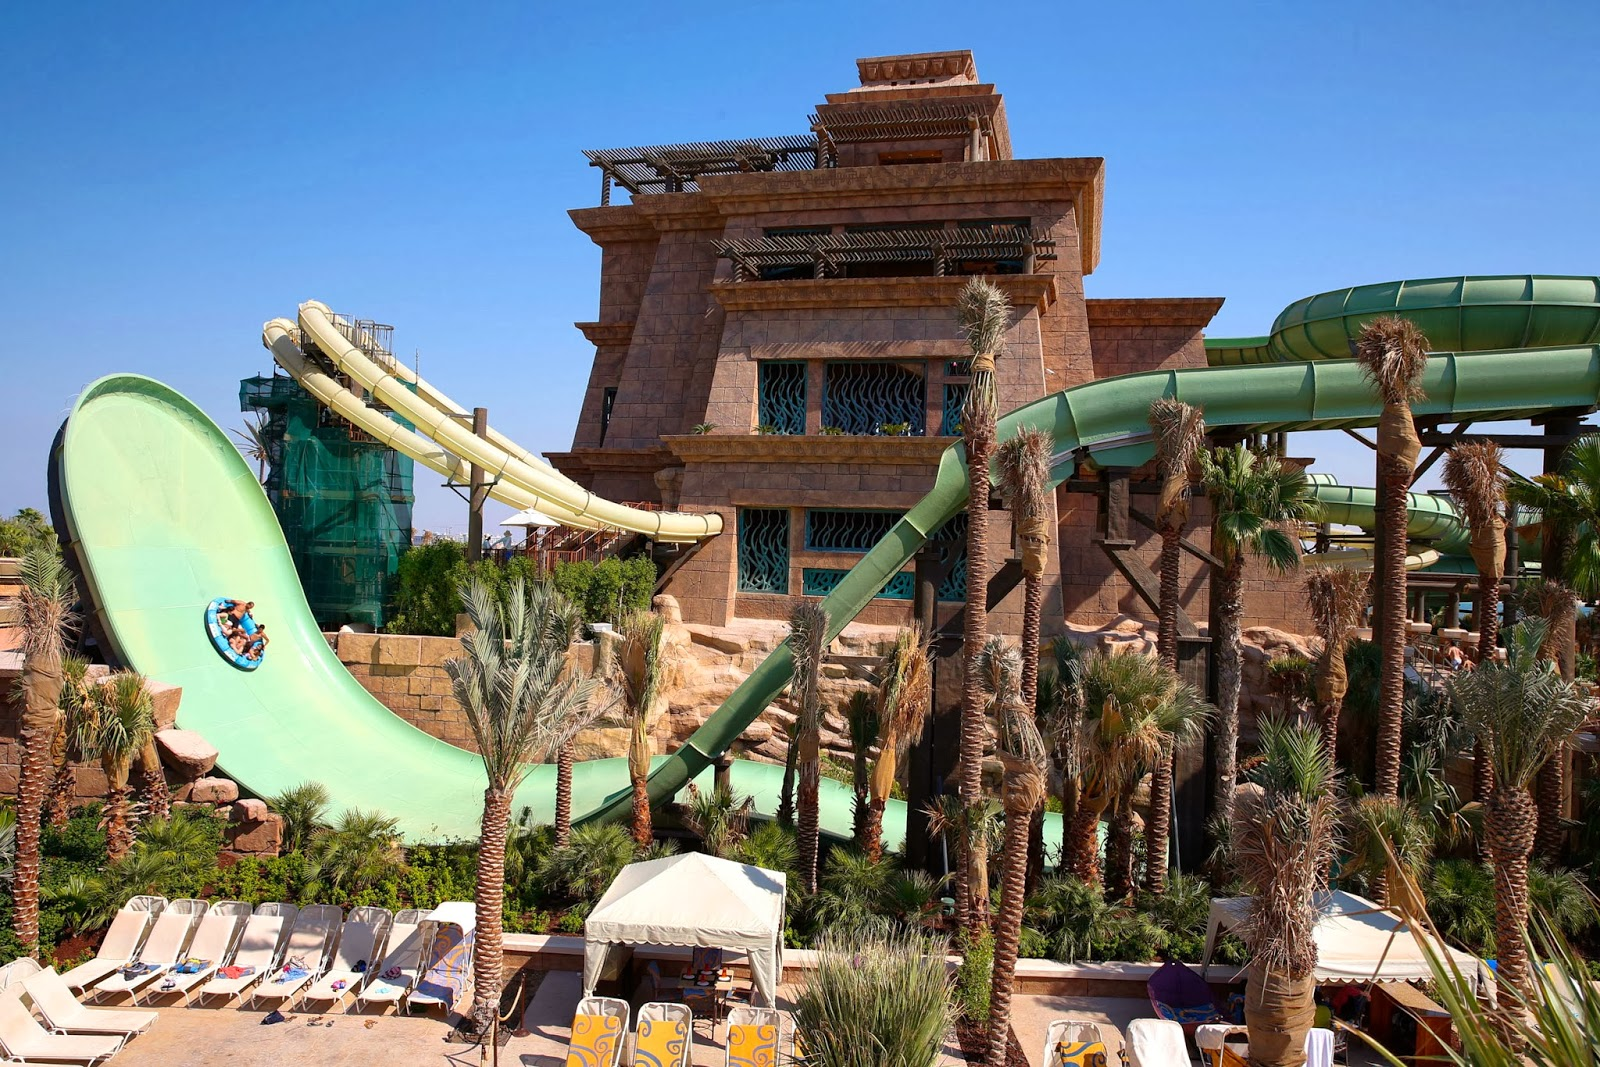 NewsPlusNotes: Beautiful New Slide Tower Now Open at Atlantis The Palm